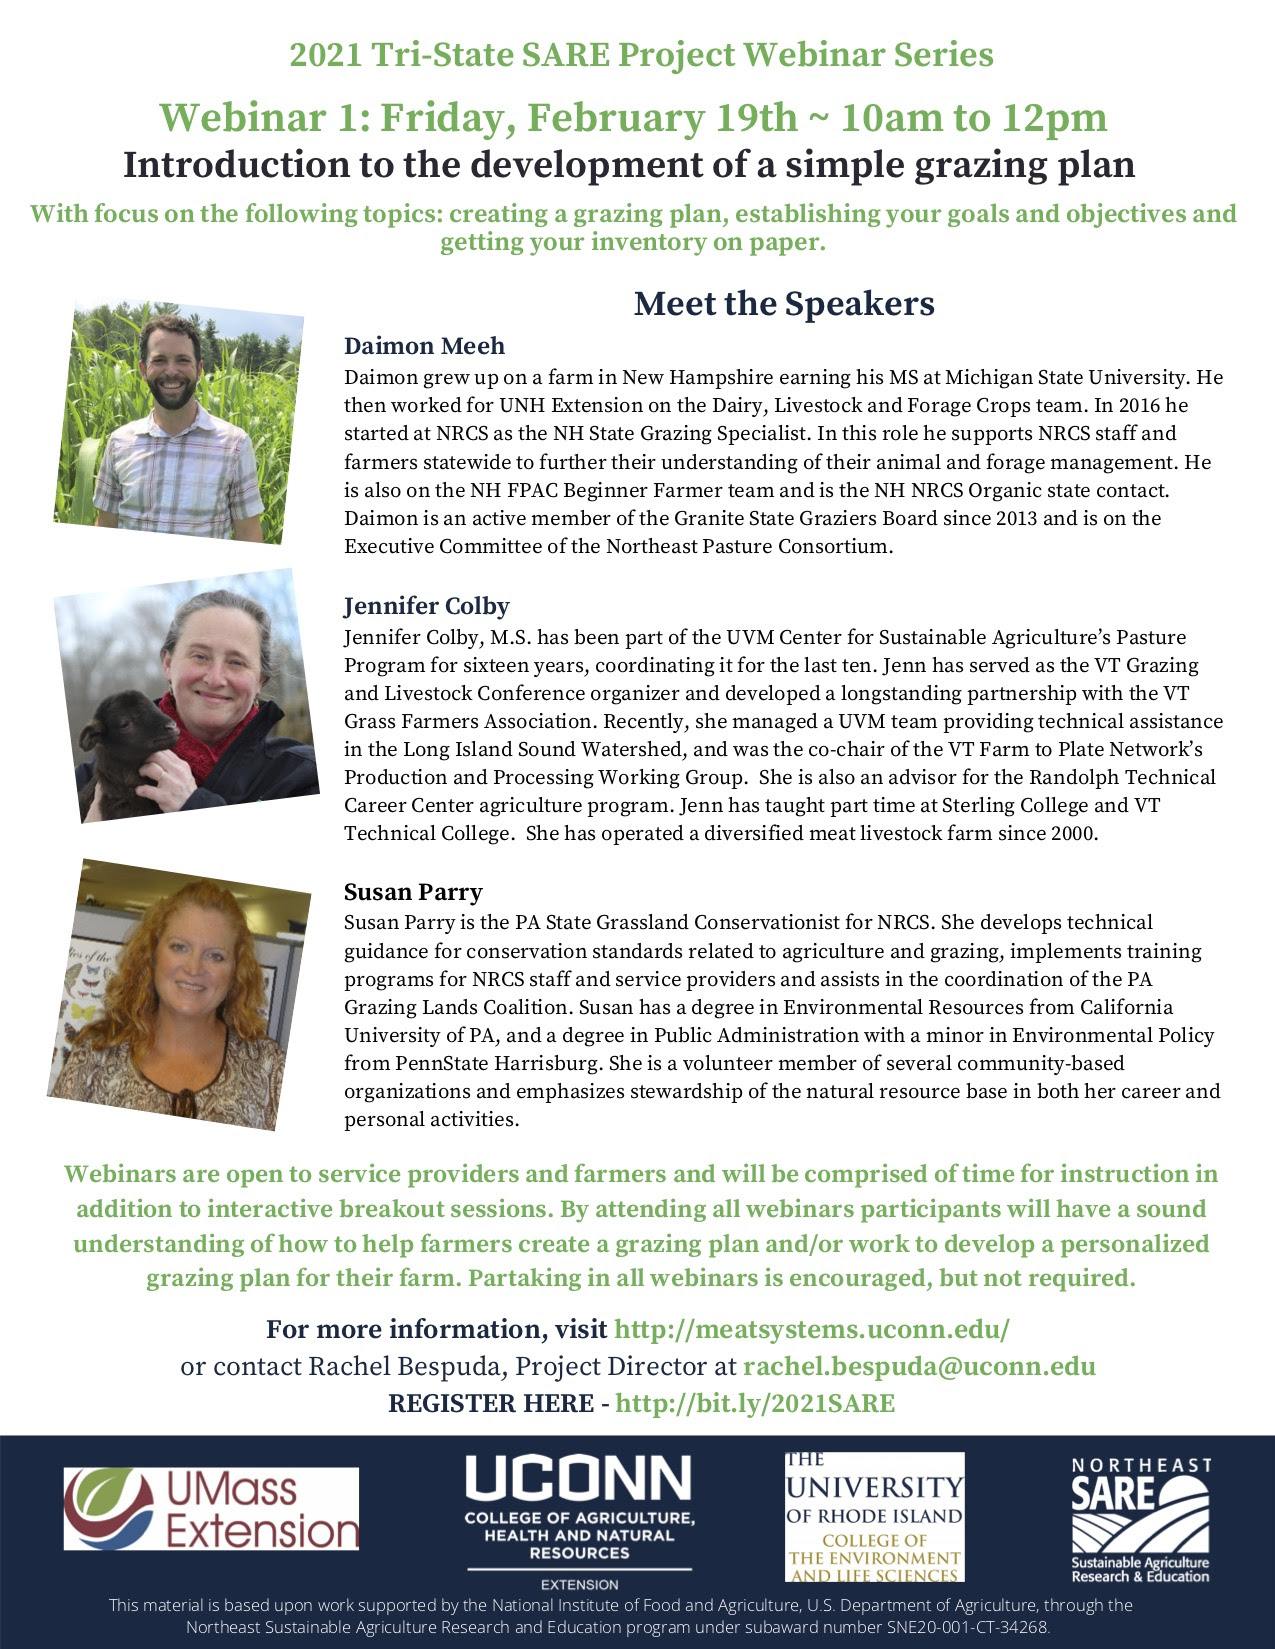 2021 Tri-State SARE Project Webinar Series information